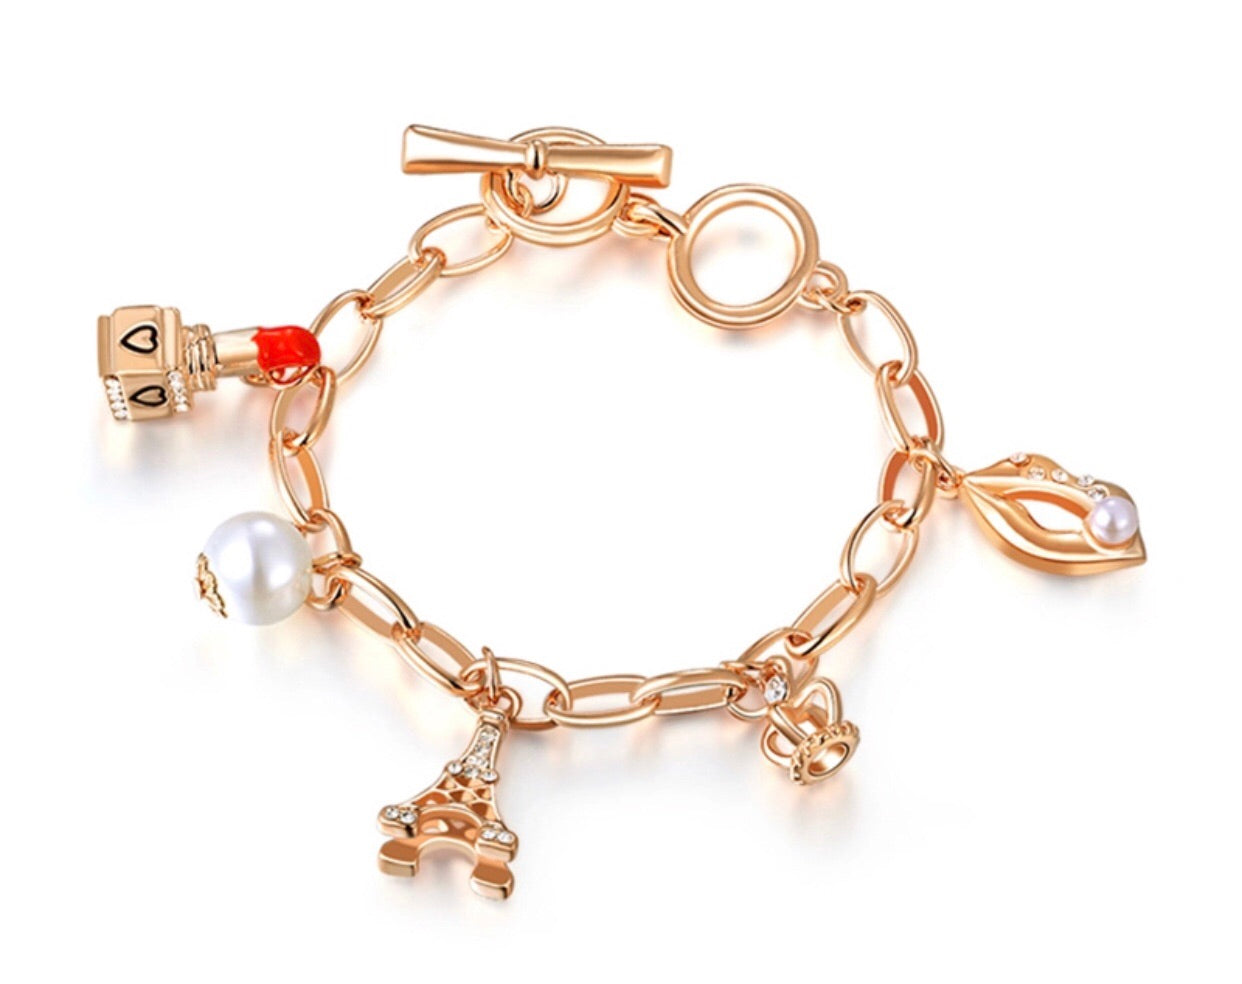 Paris Queen with Lipstick charm bracelet